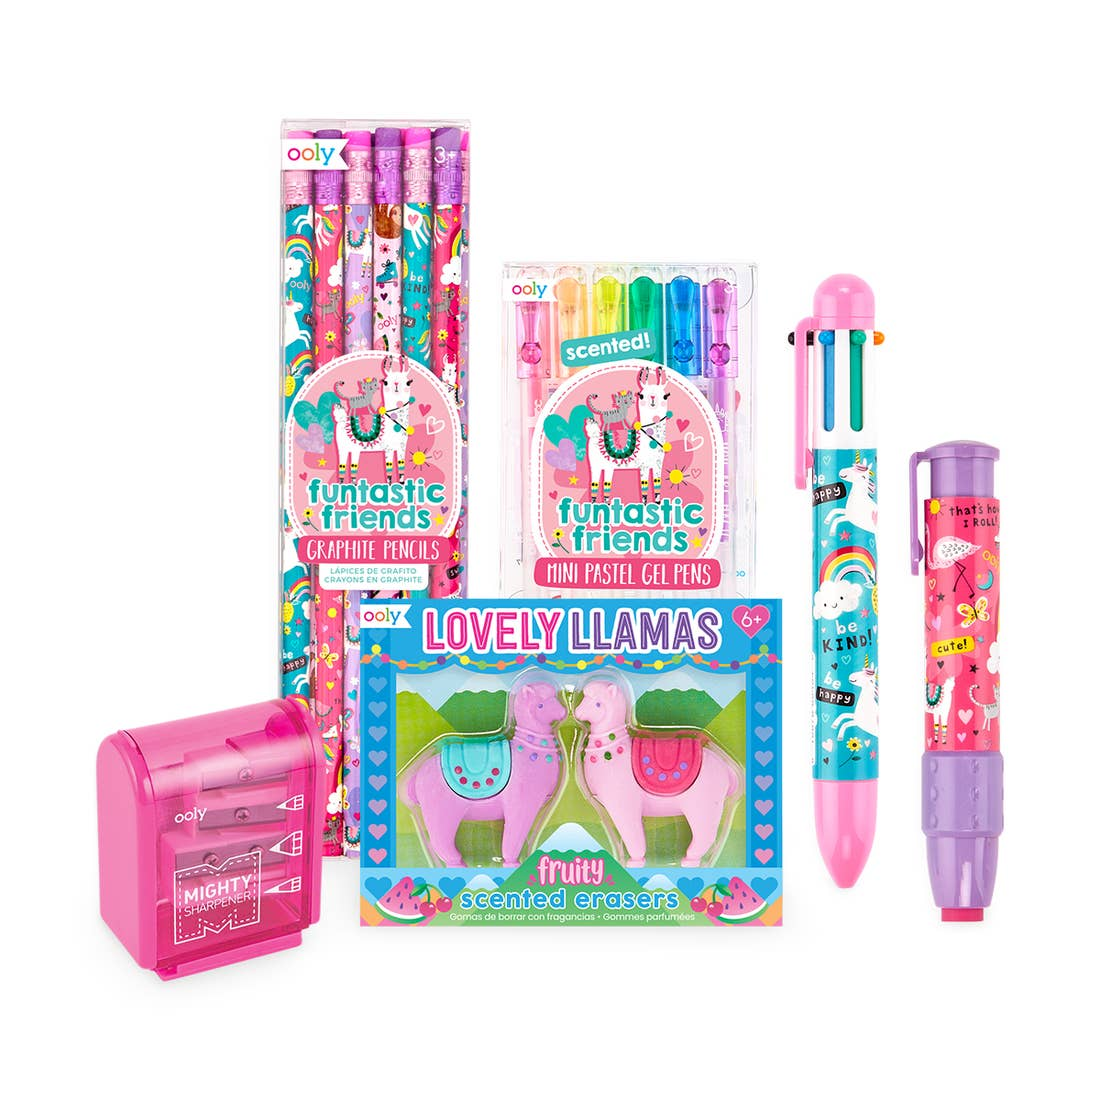 Stationary Happy Packs - Assorted Colorful Sets